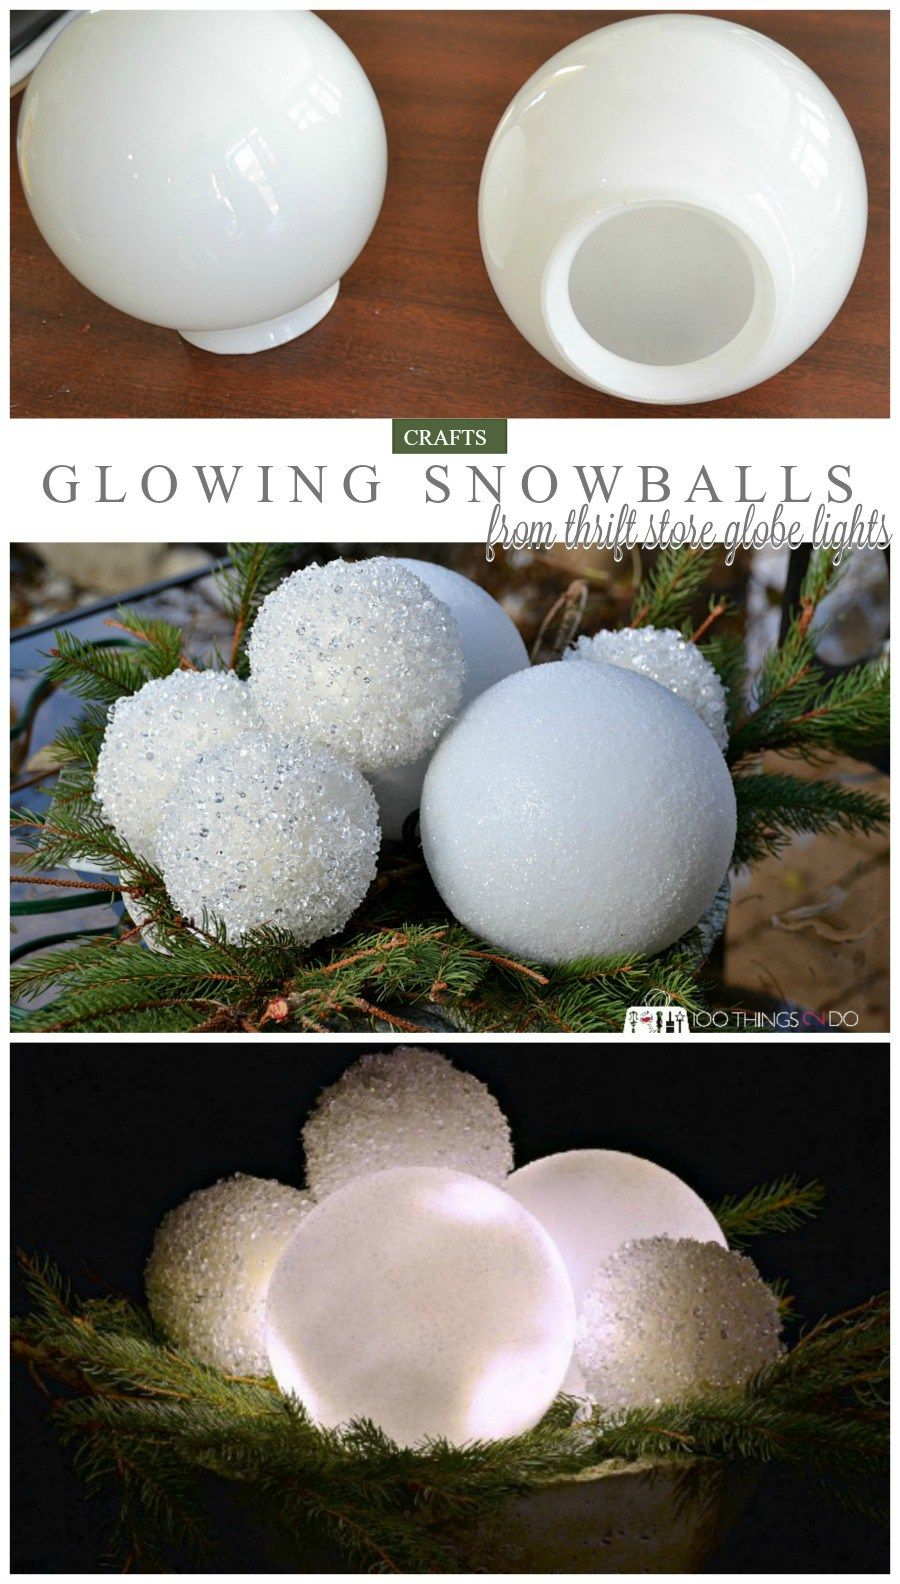 glowing snowballs winter decor globe lights snowball and globe